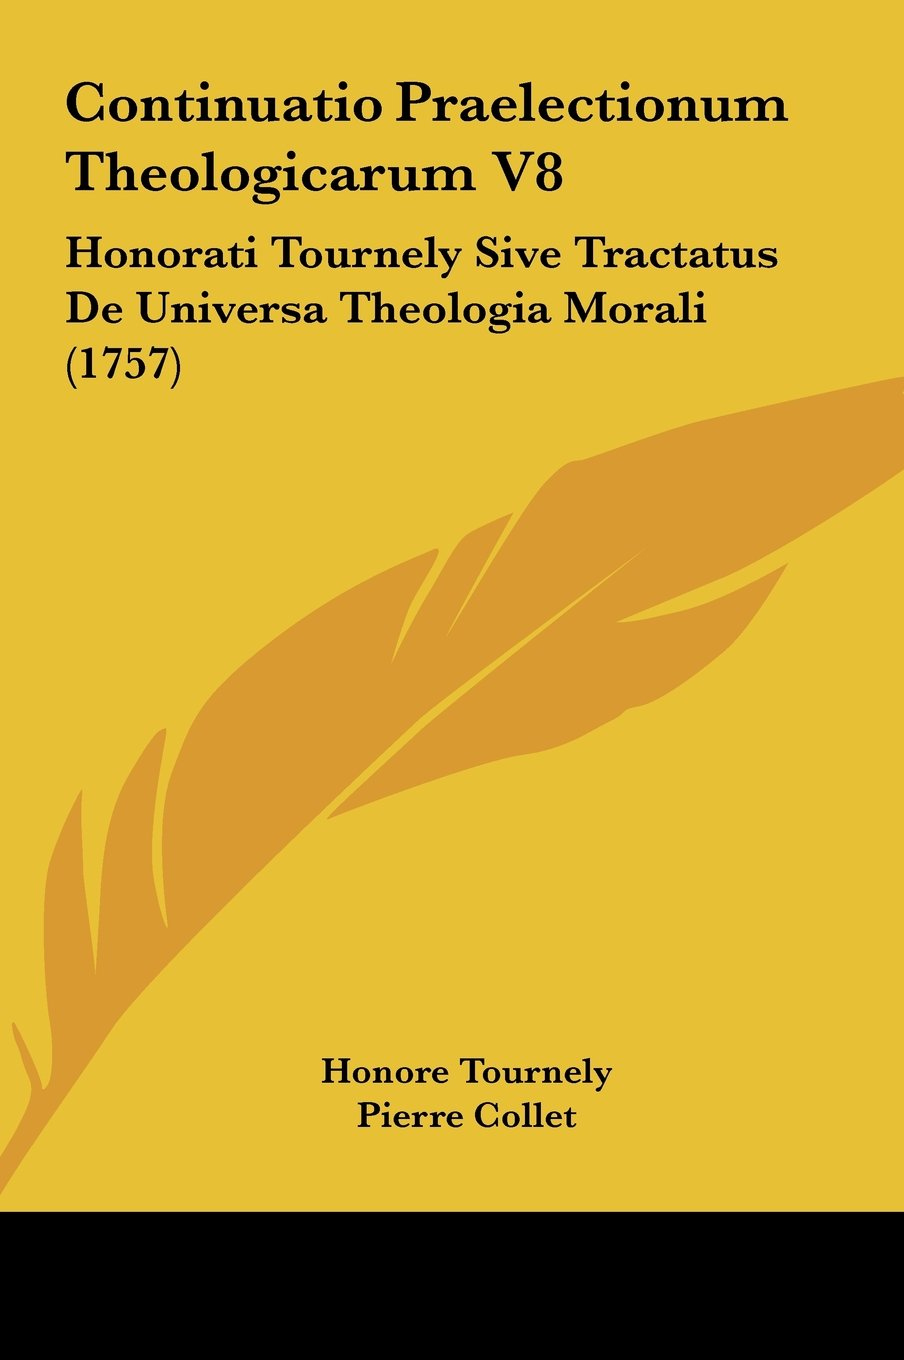 Download Continuatio Praelectionum Theologicarum V8: Honorati Tournely Sive Tractatus De Universa Theologia Morali (1757) (Latin Edition) pdf